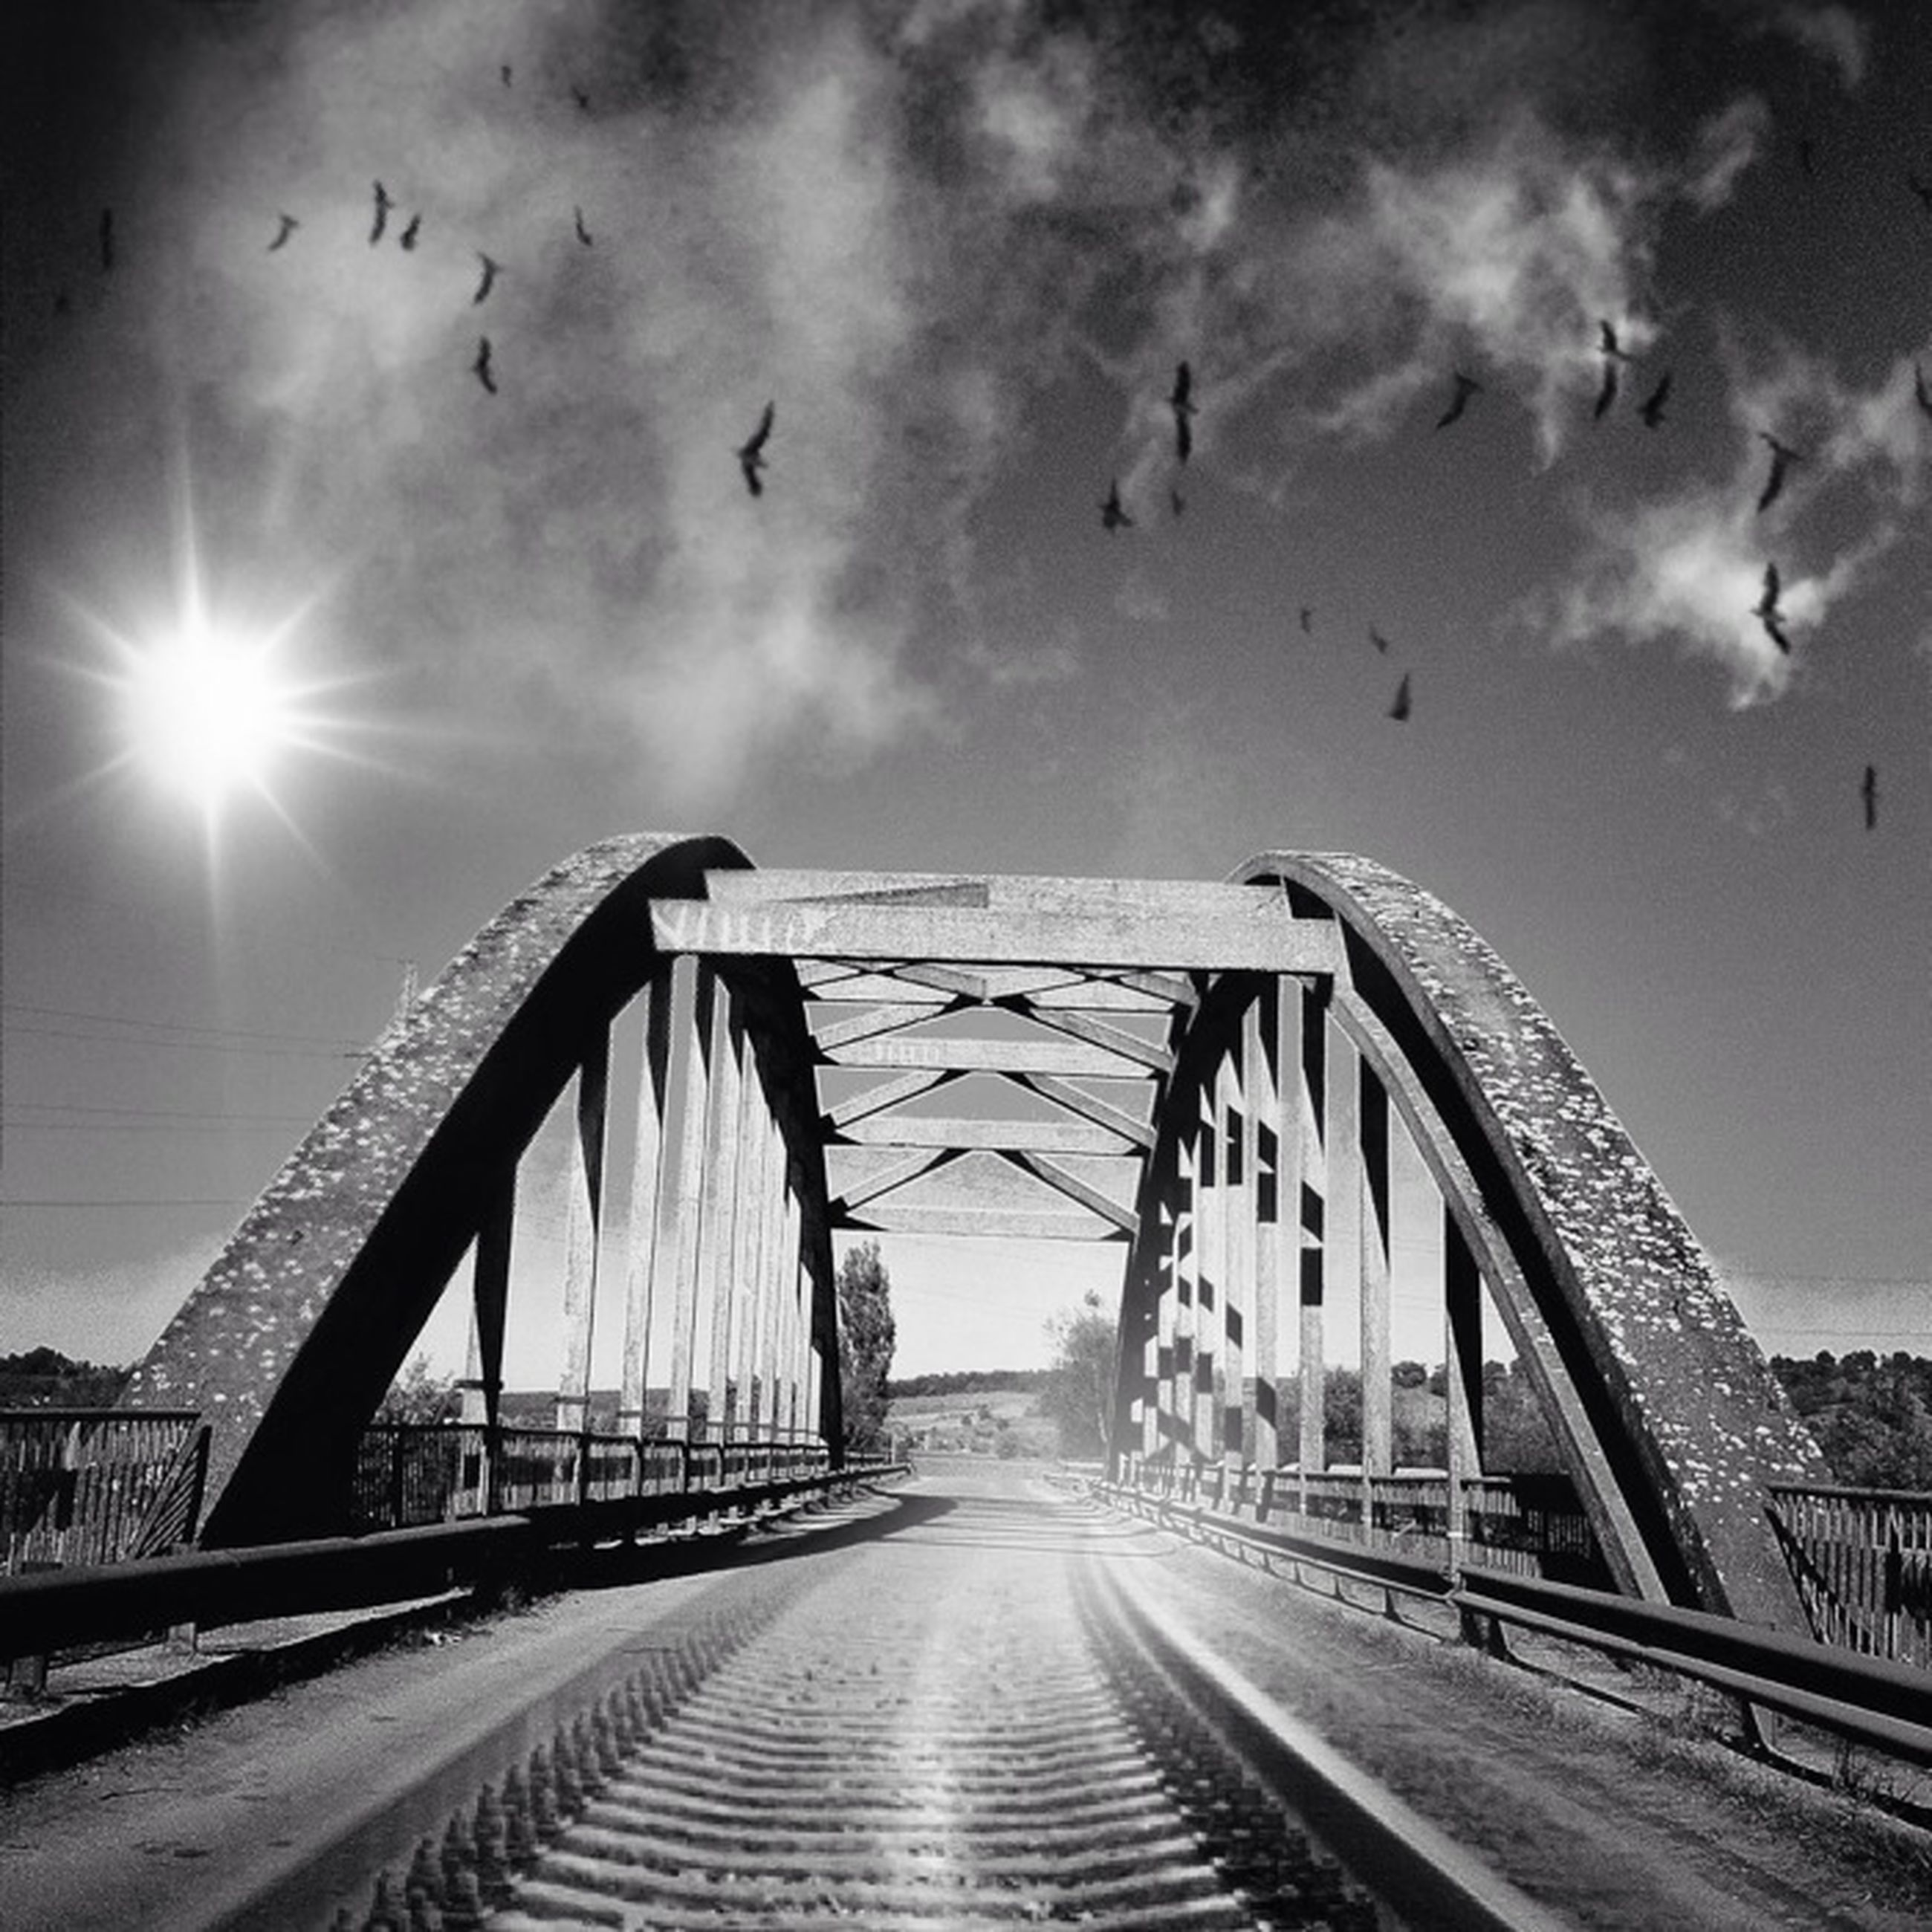 bird, the way forward, sky, built structure, architecture, transportation, diminishing perspective, connection, bridge - man made structure, animal themes, vanishing point, cloud - sky, railing, sun, wildlife, animals in the wild, flying, sunlight, nature, outdoors